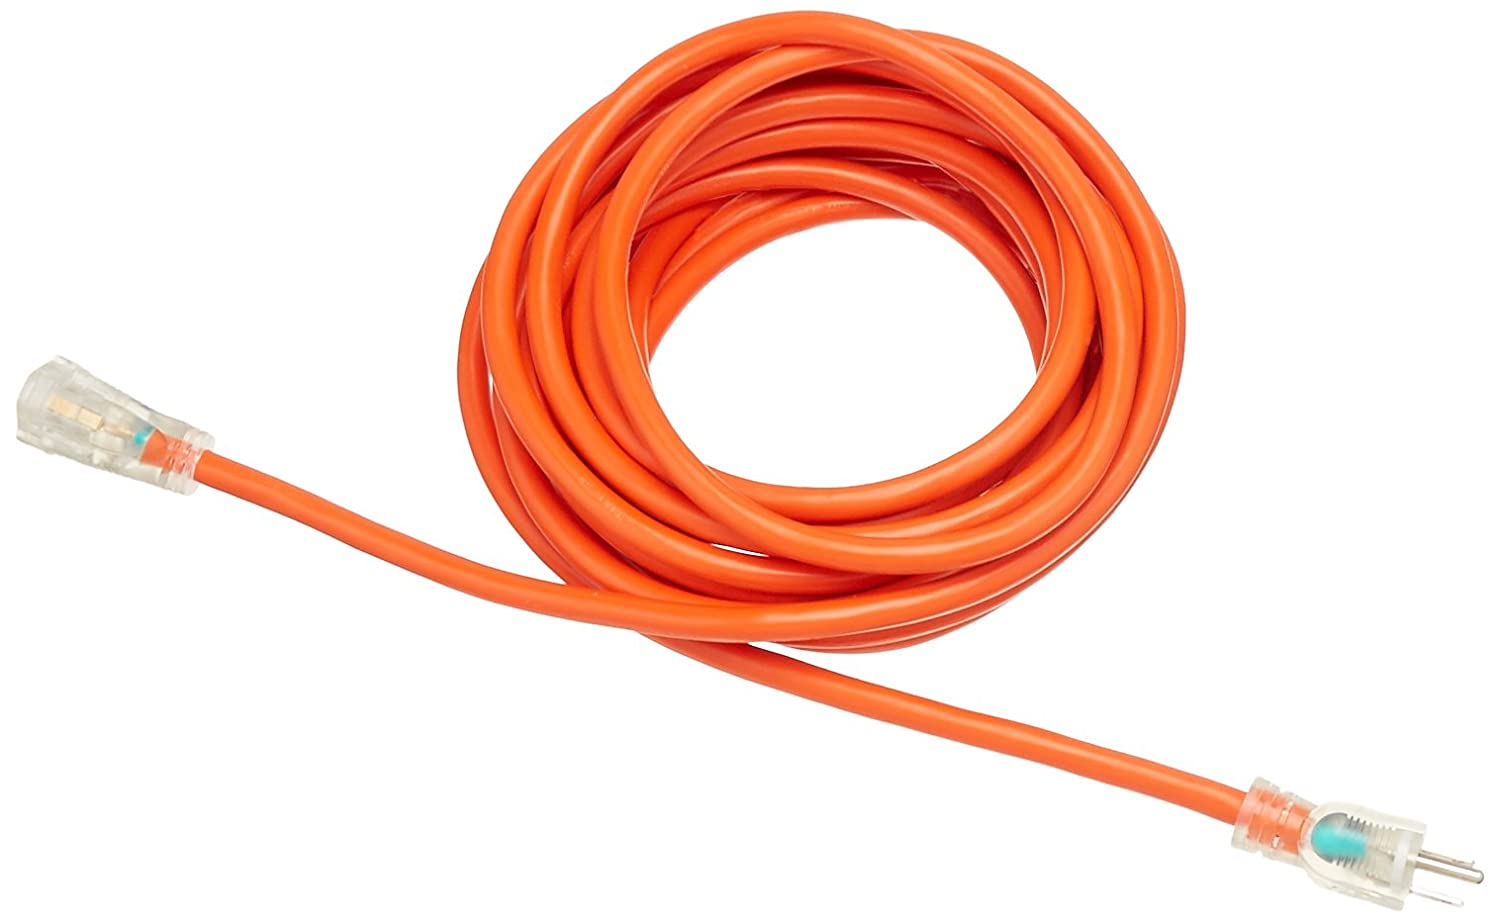 amazonbasics 12 3 sjtw heavy duty lighted extension cord orange rh amazon com